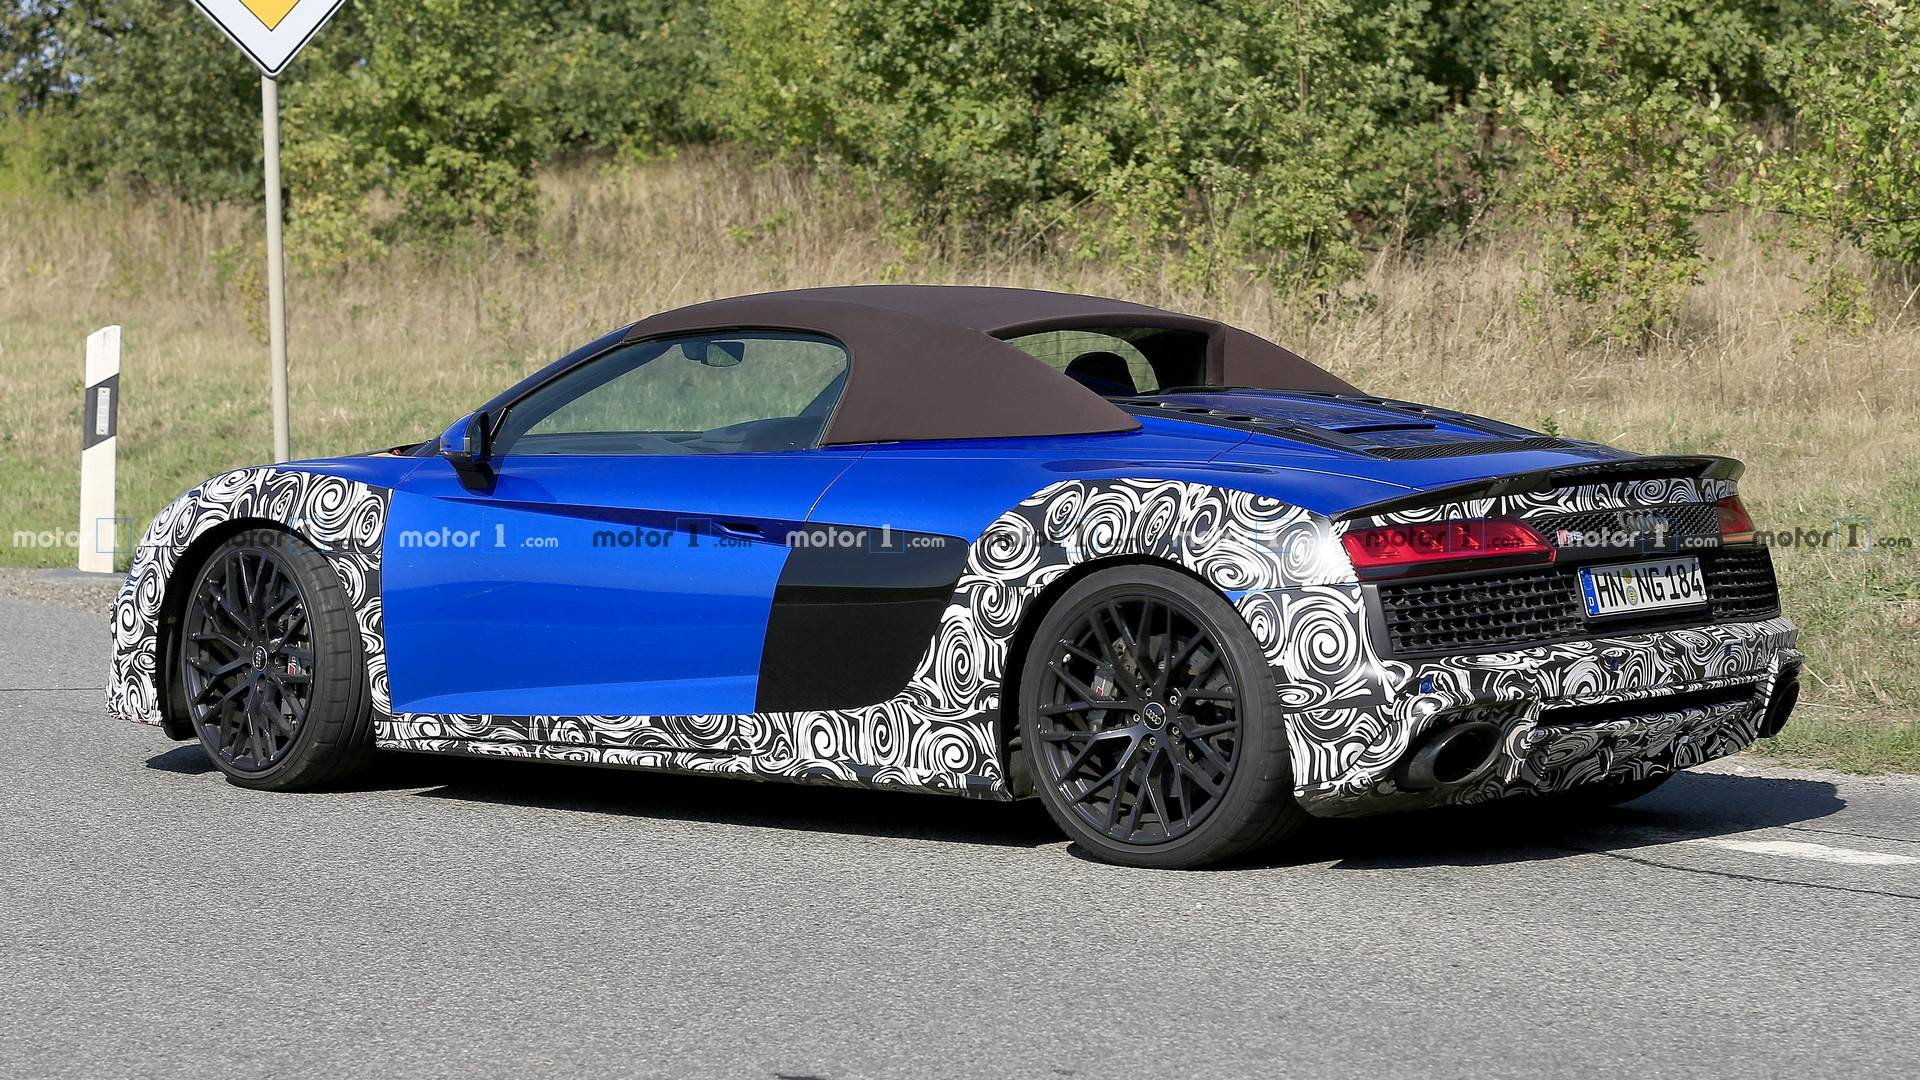 2015 - [Audi] R8 II / R8 II Spider - Page 14 Audi-r8-spyder-facelift-spy-photo